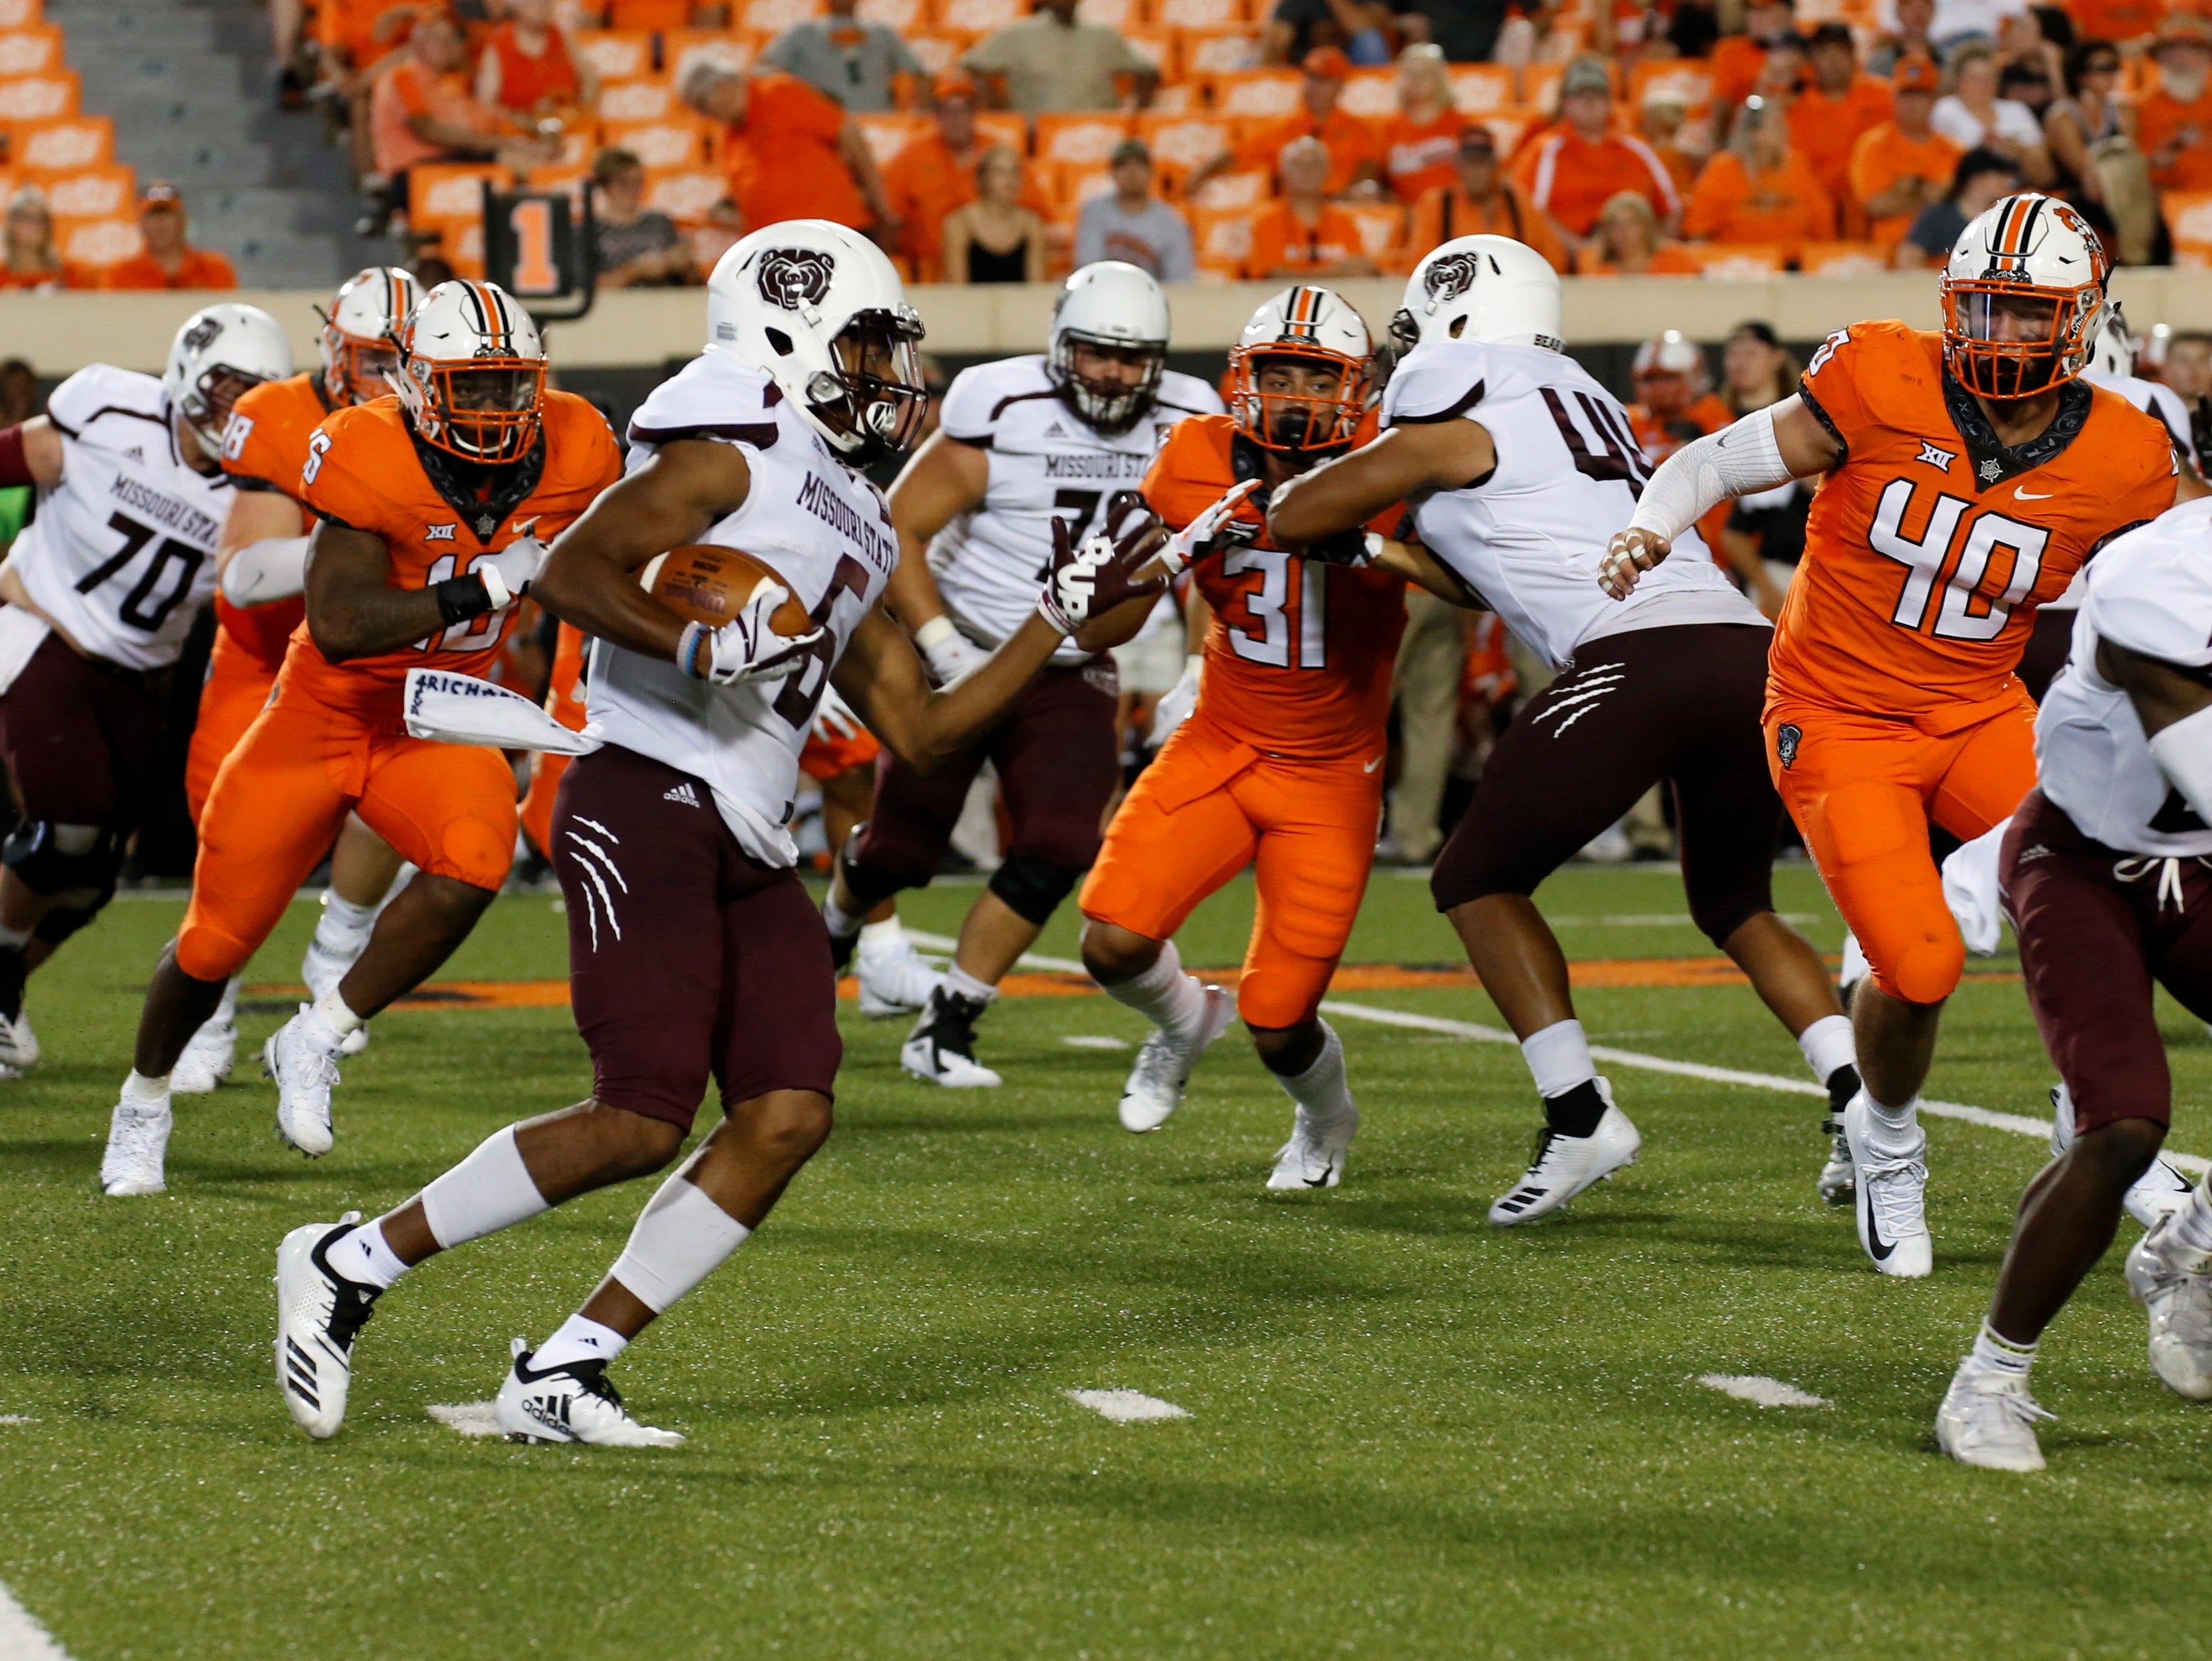 Missouri State against Oklahoma State in Stillwater, OK on August 30, 2018.